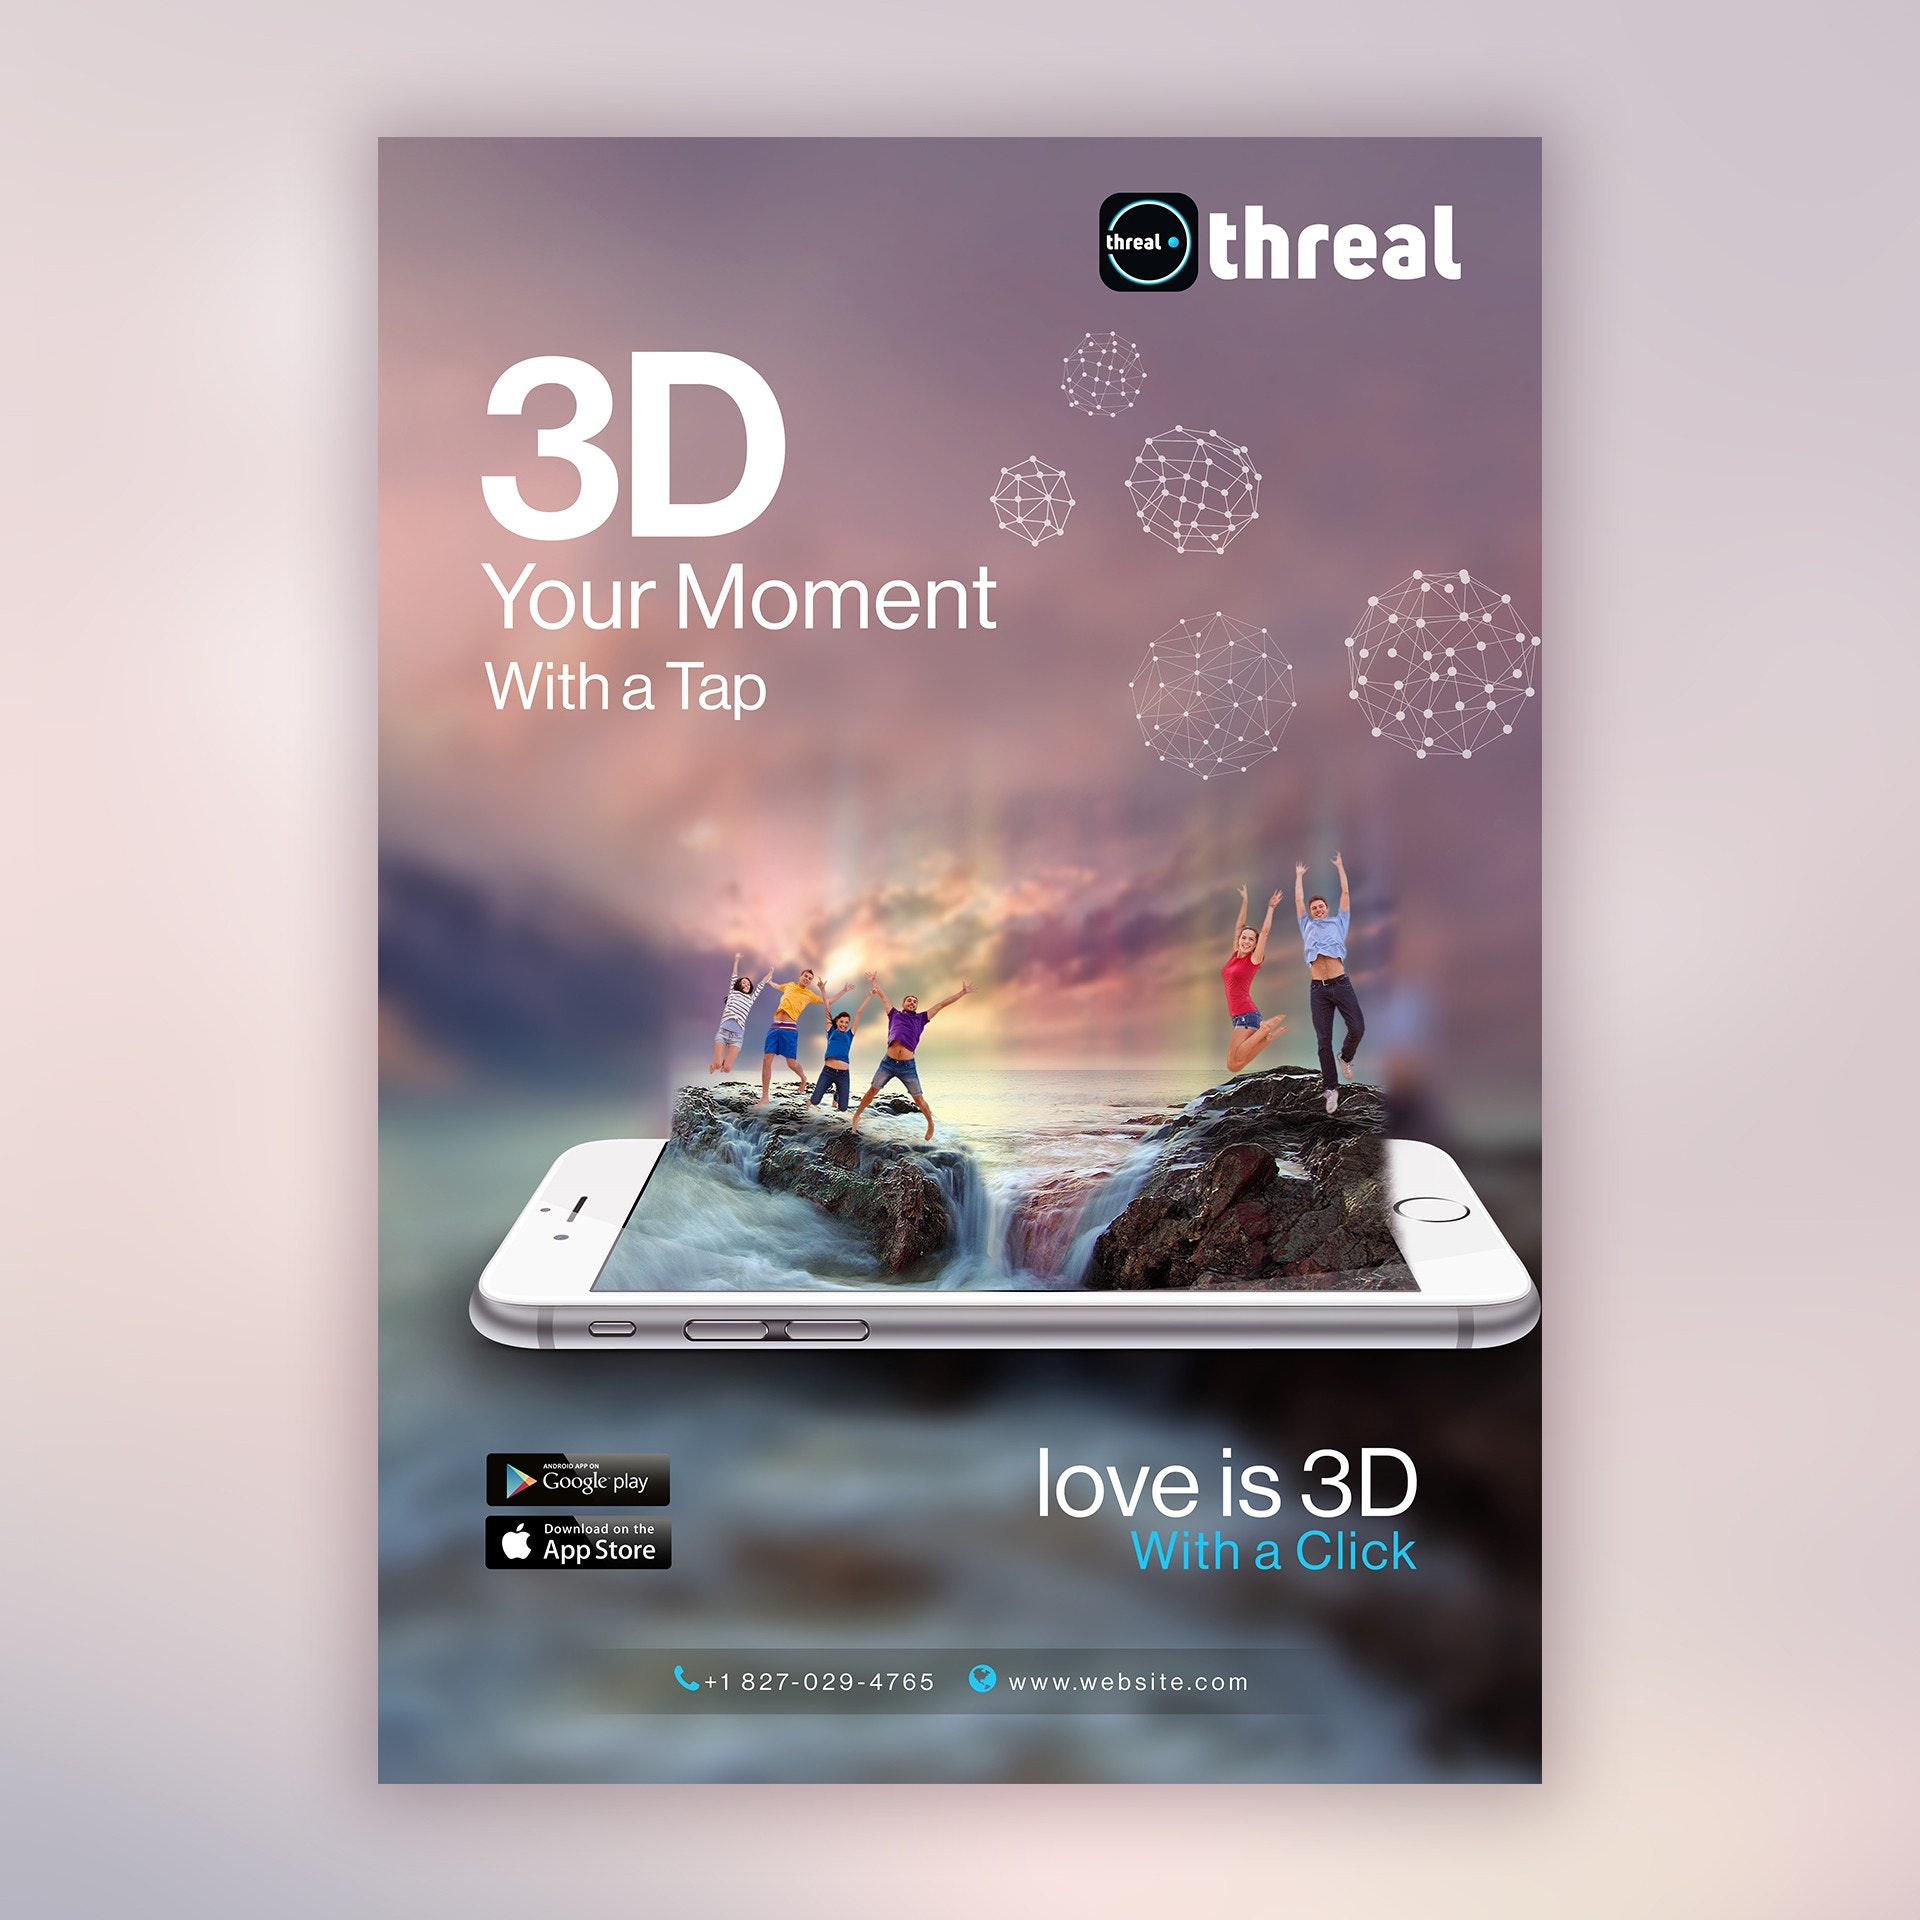 eye-catching poster design for a 3D company